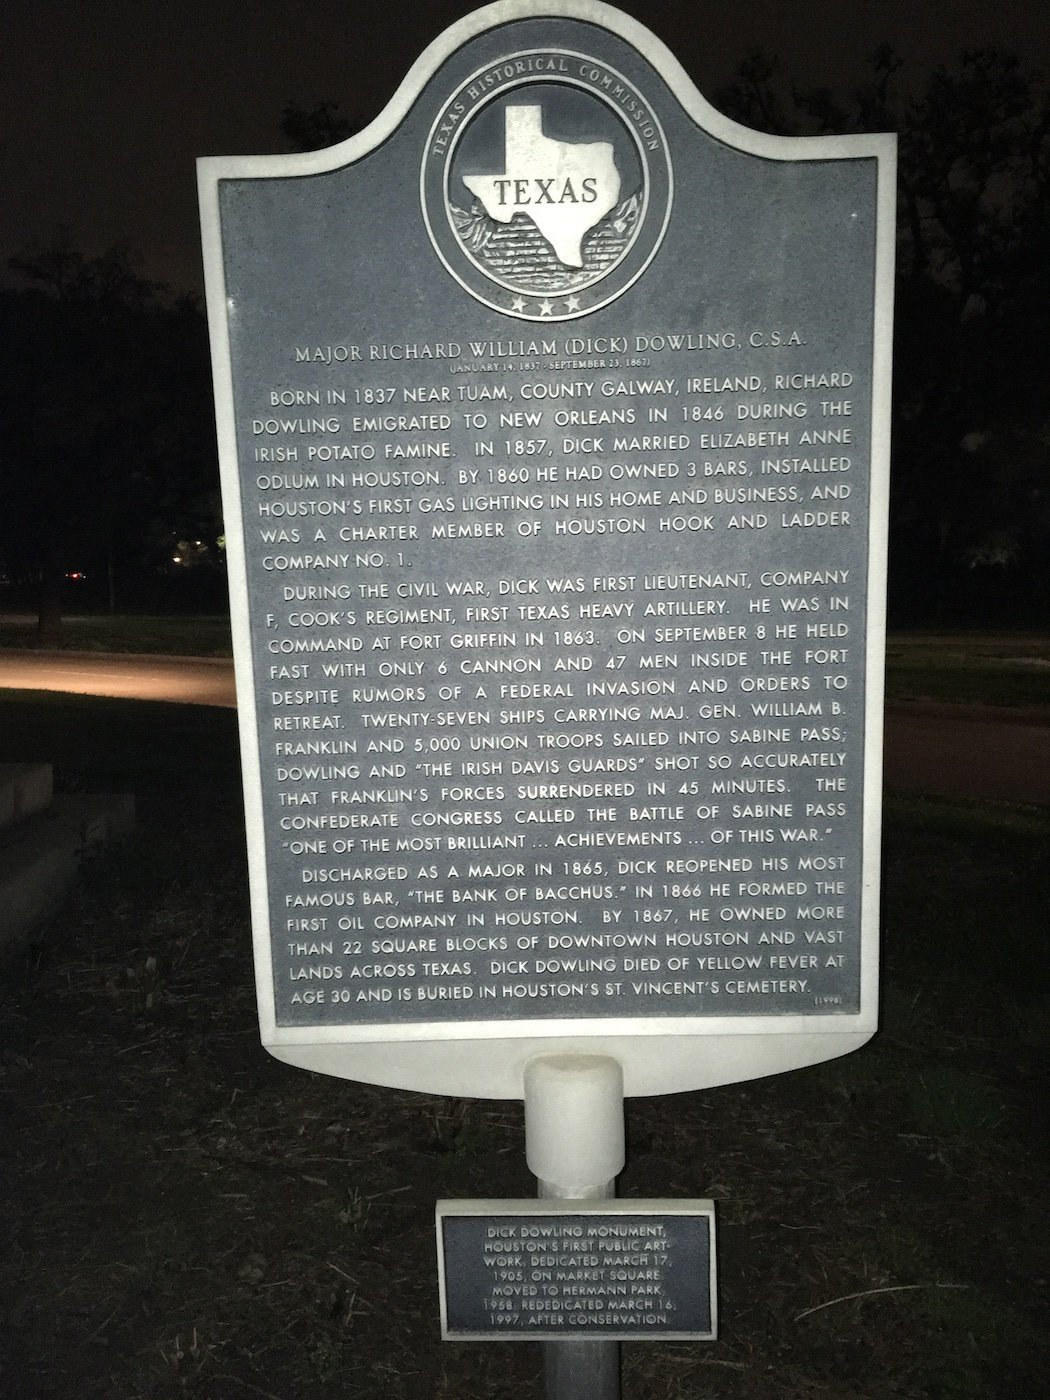 Texas State Historical Commission Marker